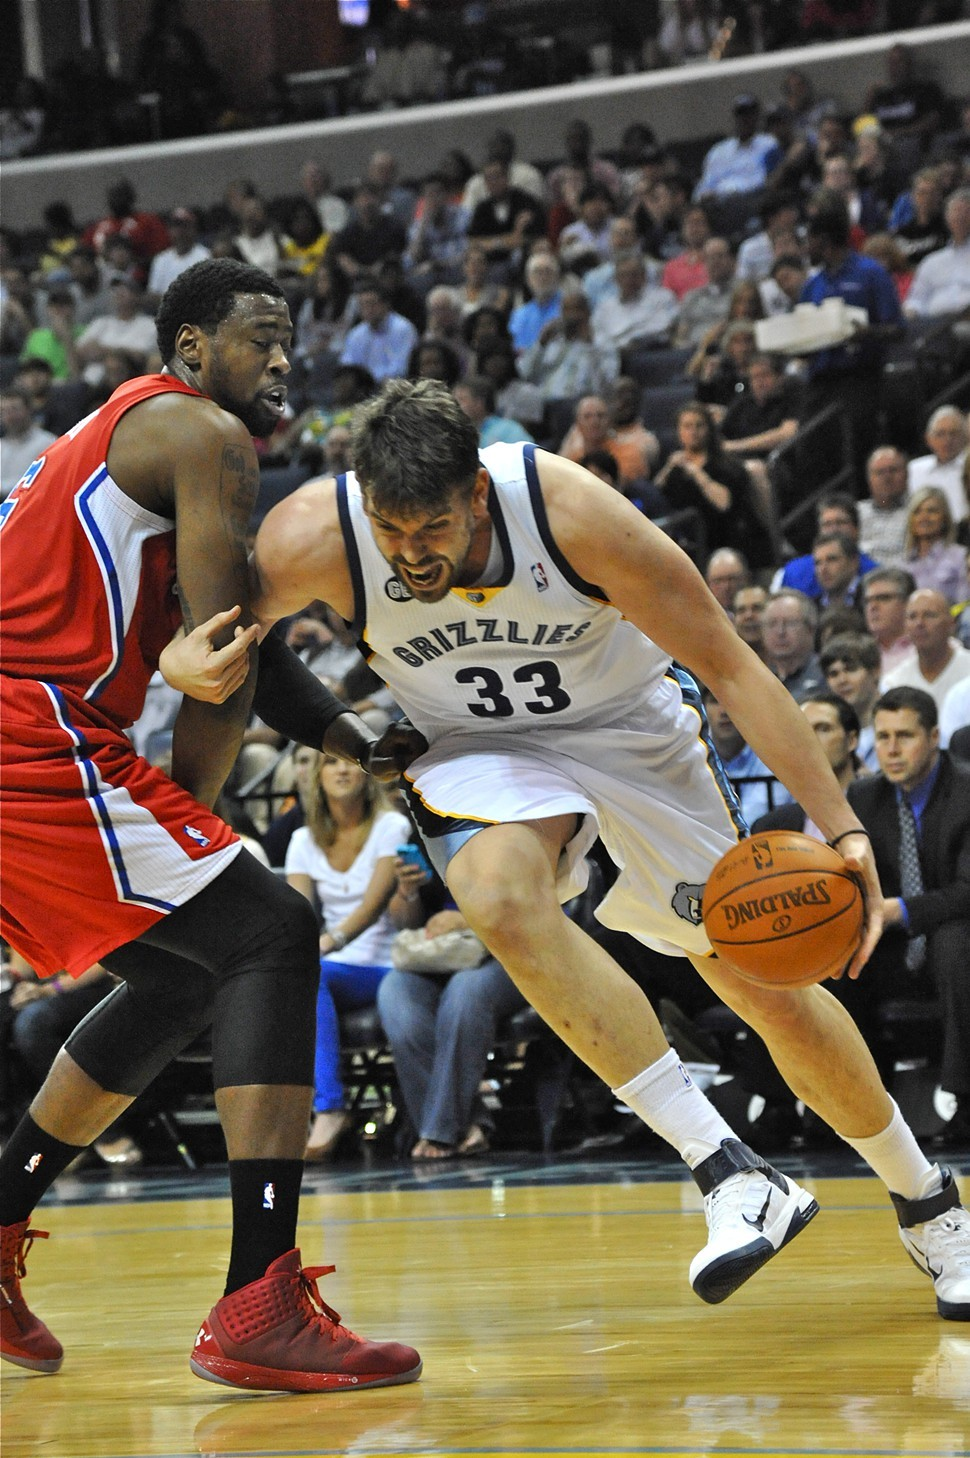 Can Marc Gasol and the Grizzlies go hard in the paint against the Clippers big frontline?